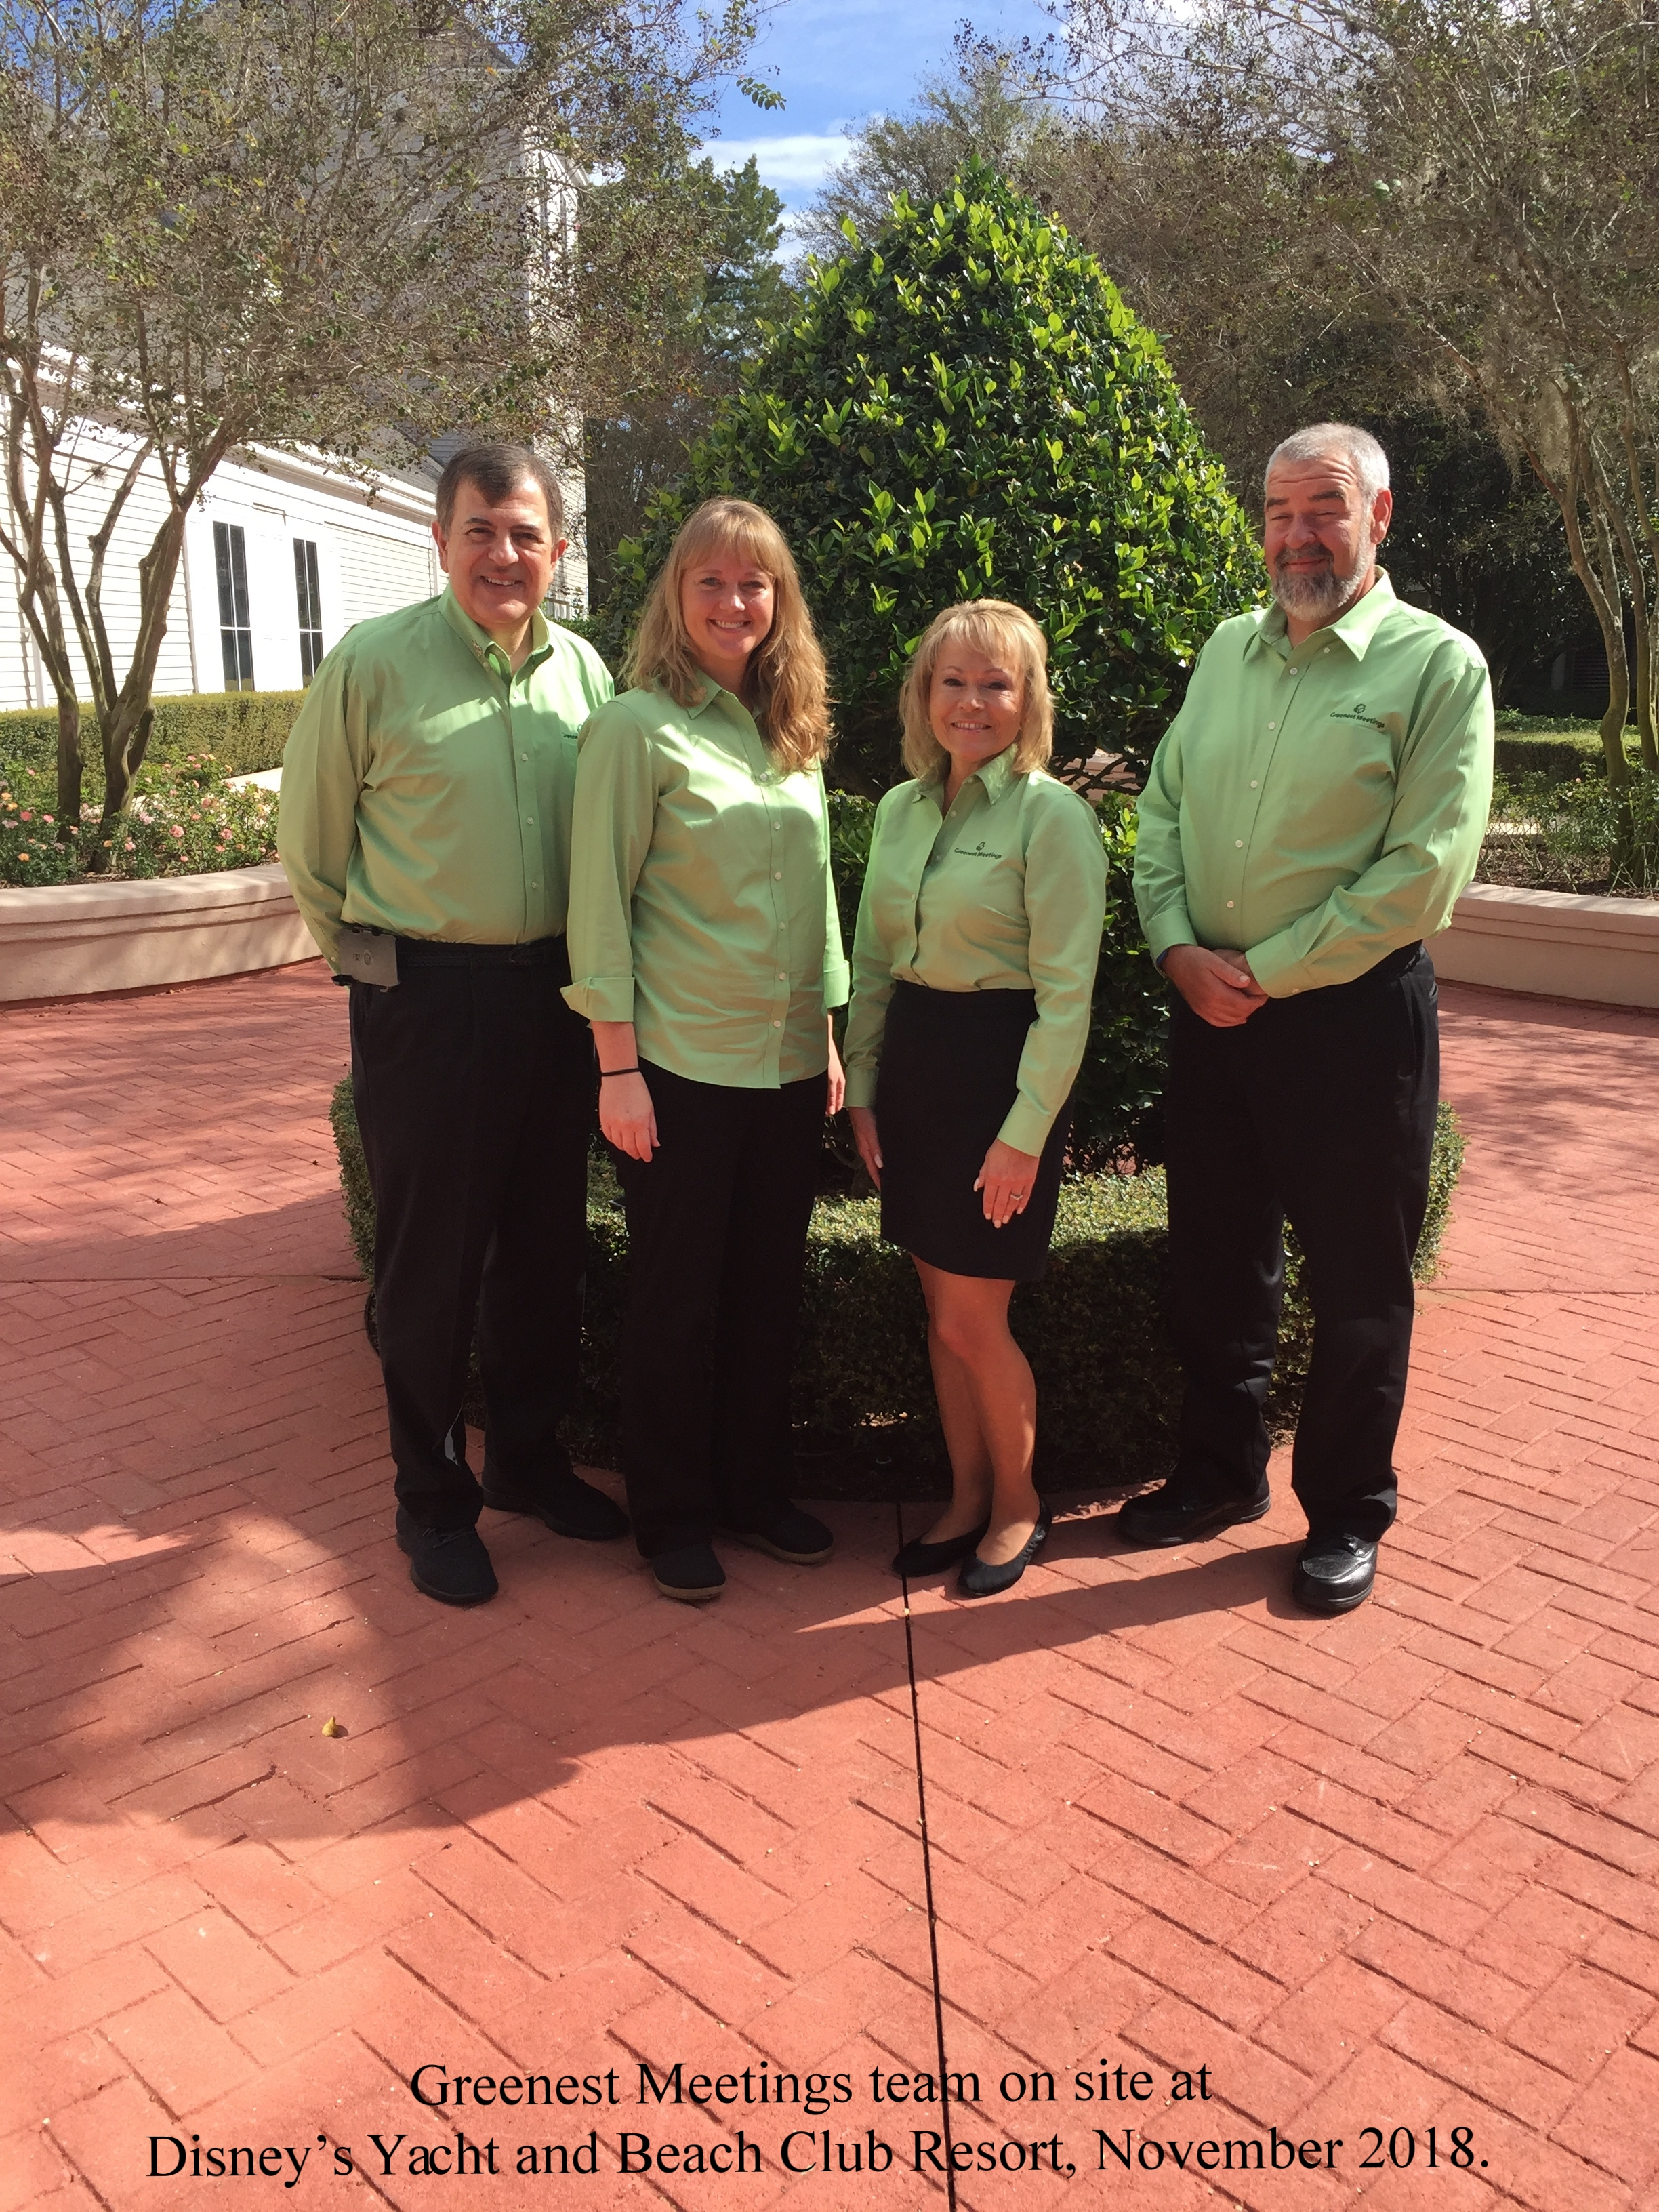 Greenest Meetings team on site at Disney's Yacht and Beach Club Resort, November 2018.